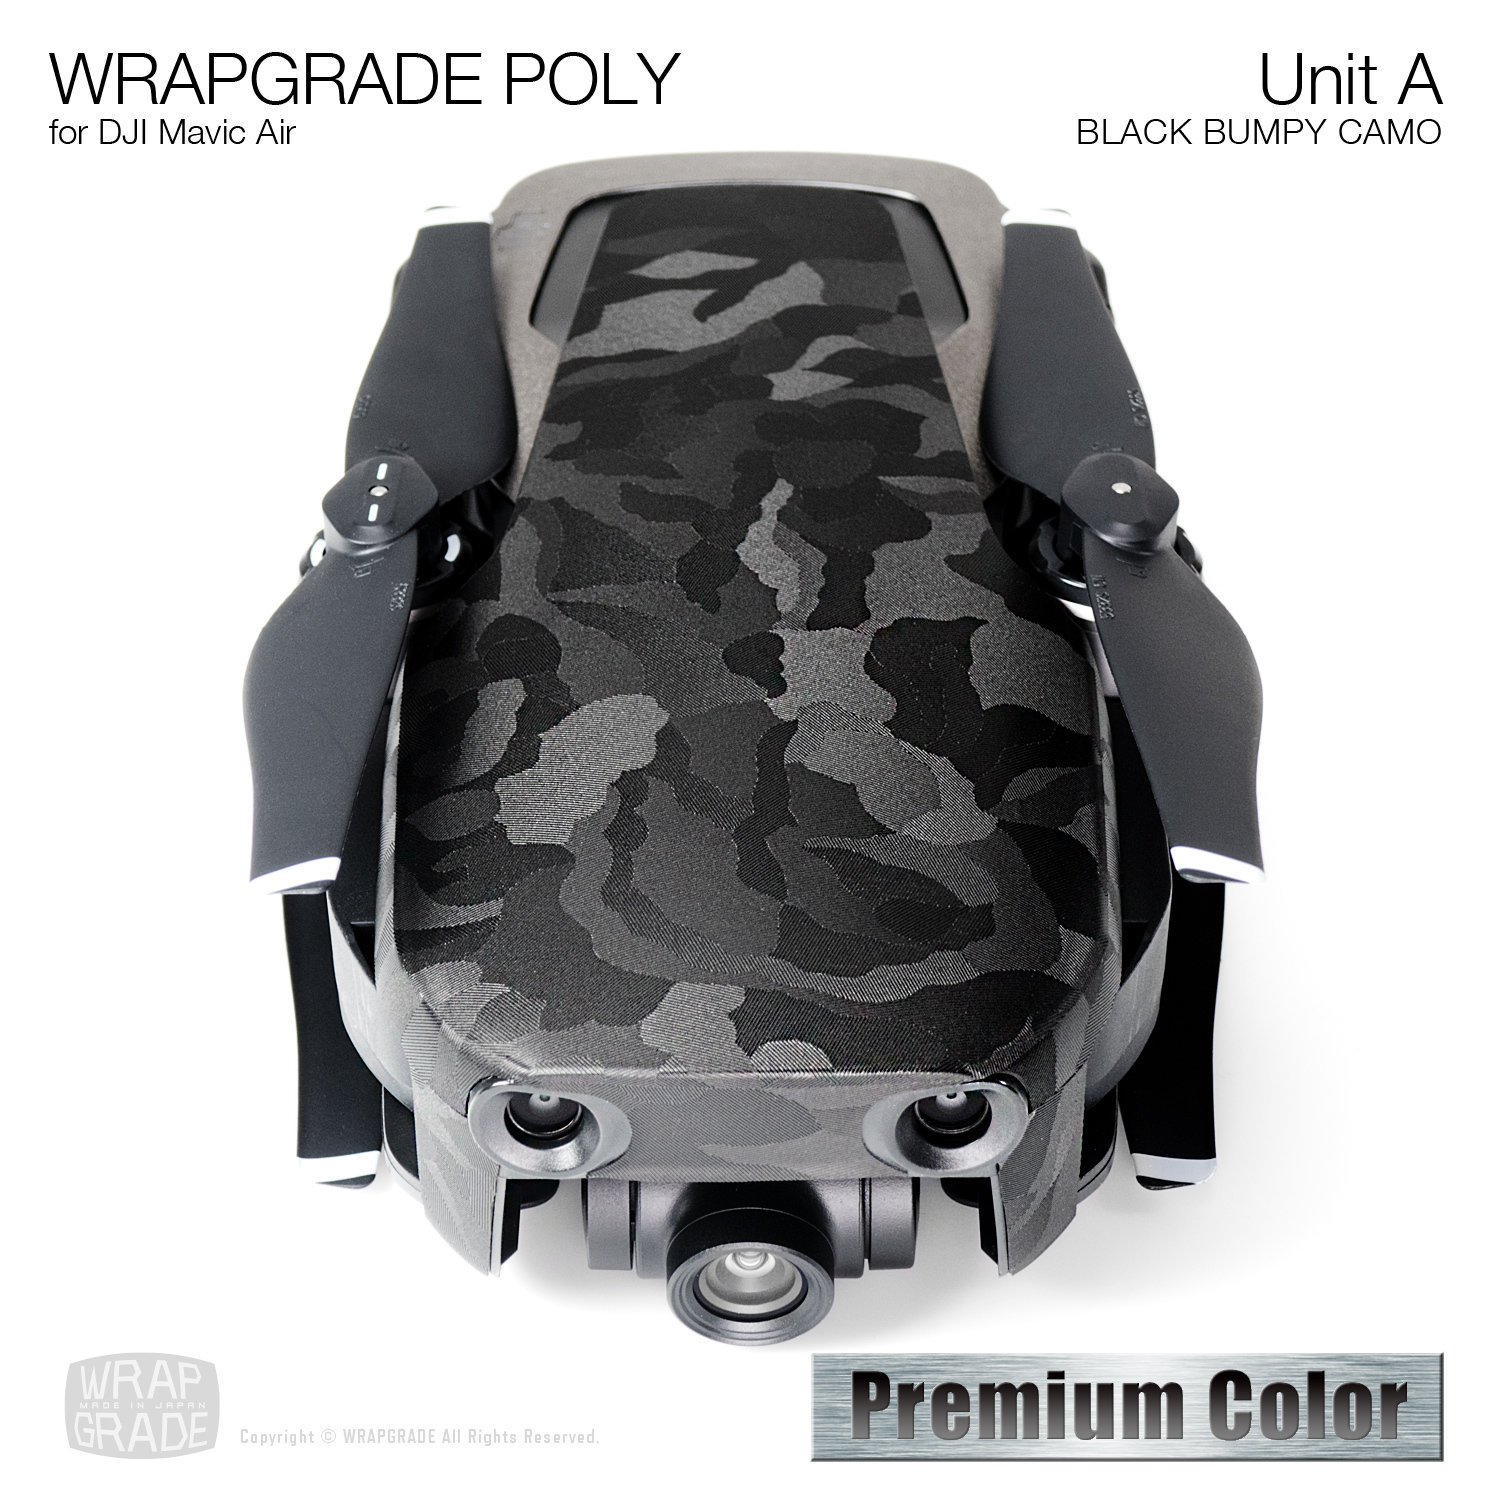 Wrapgrade Poly Skin for DJI Mavic Air | Unit A (BLACK BUMPY CAMO)